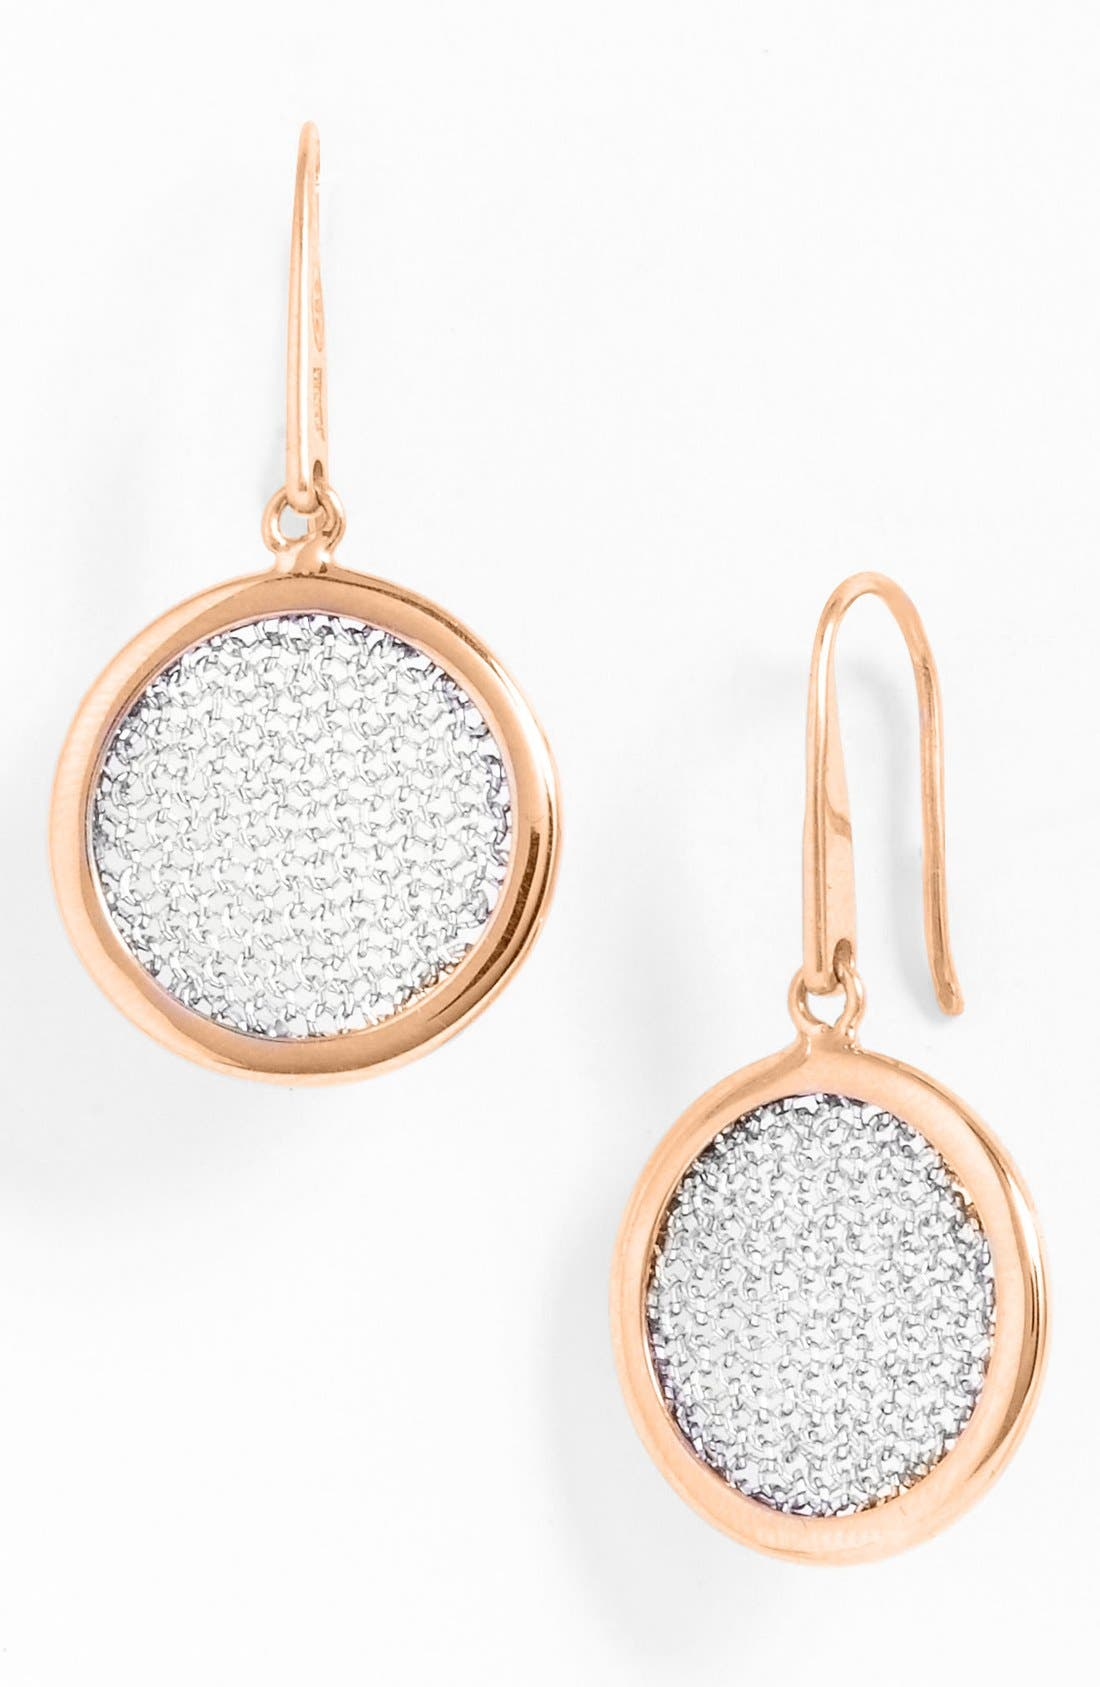 Alternate Image 1 Selected - Adami & Martucci 'Mesh' Round Drop Earrings (Nordstrom Exclusive)